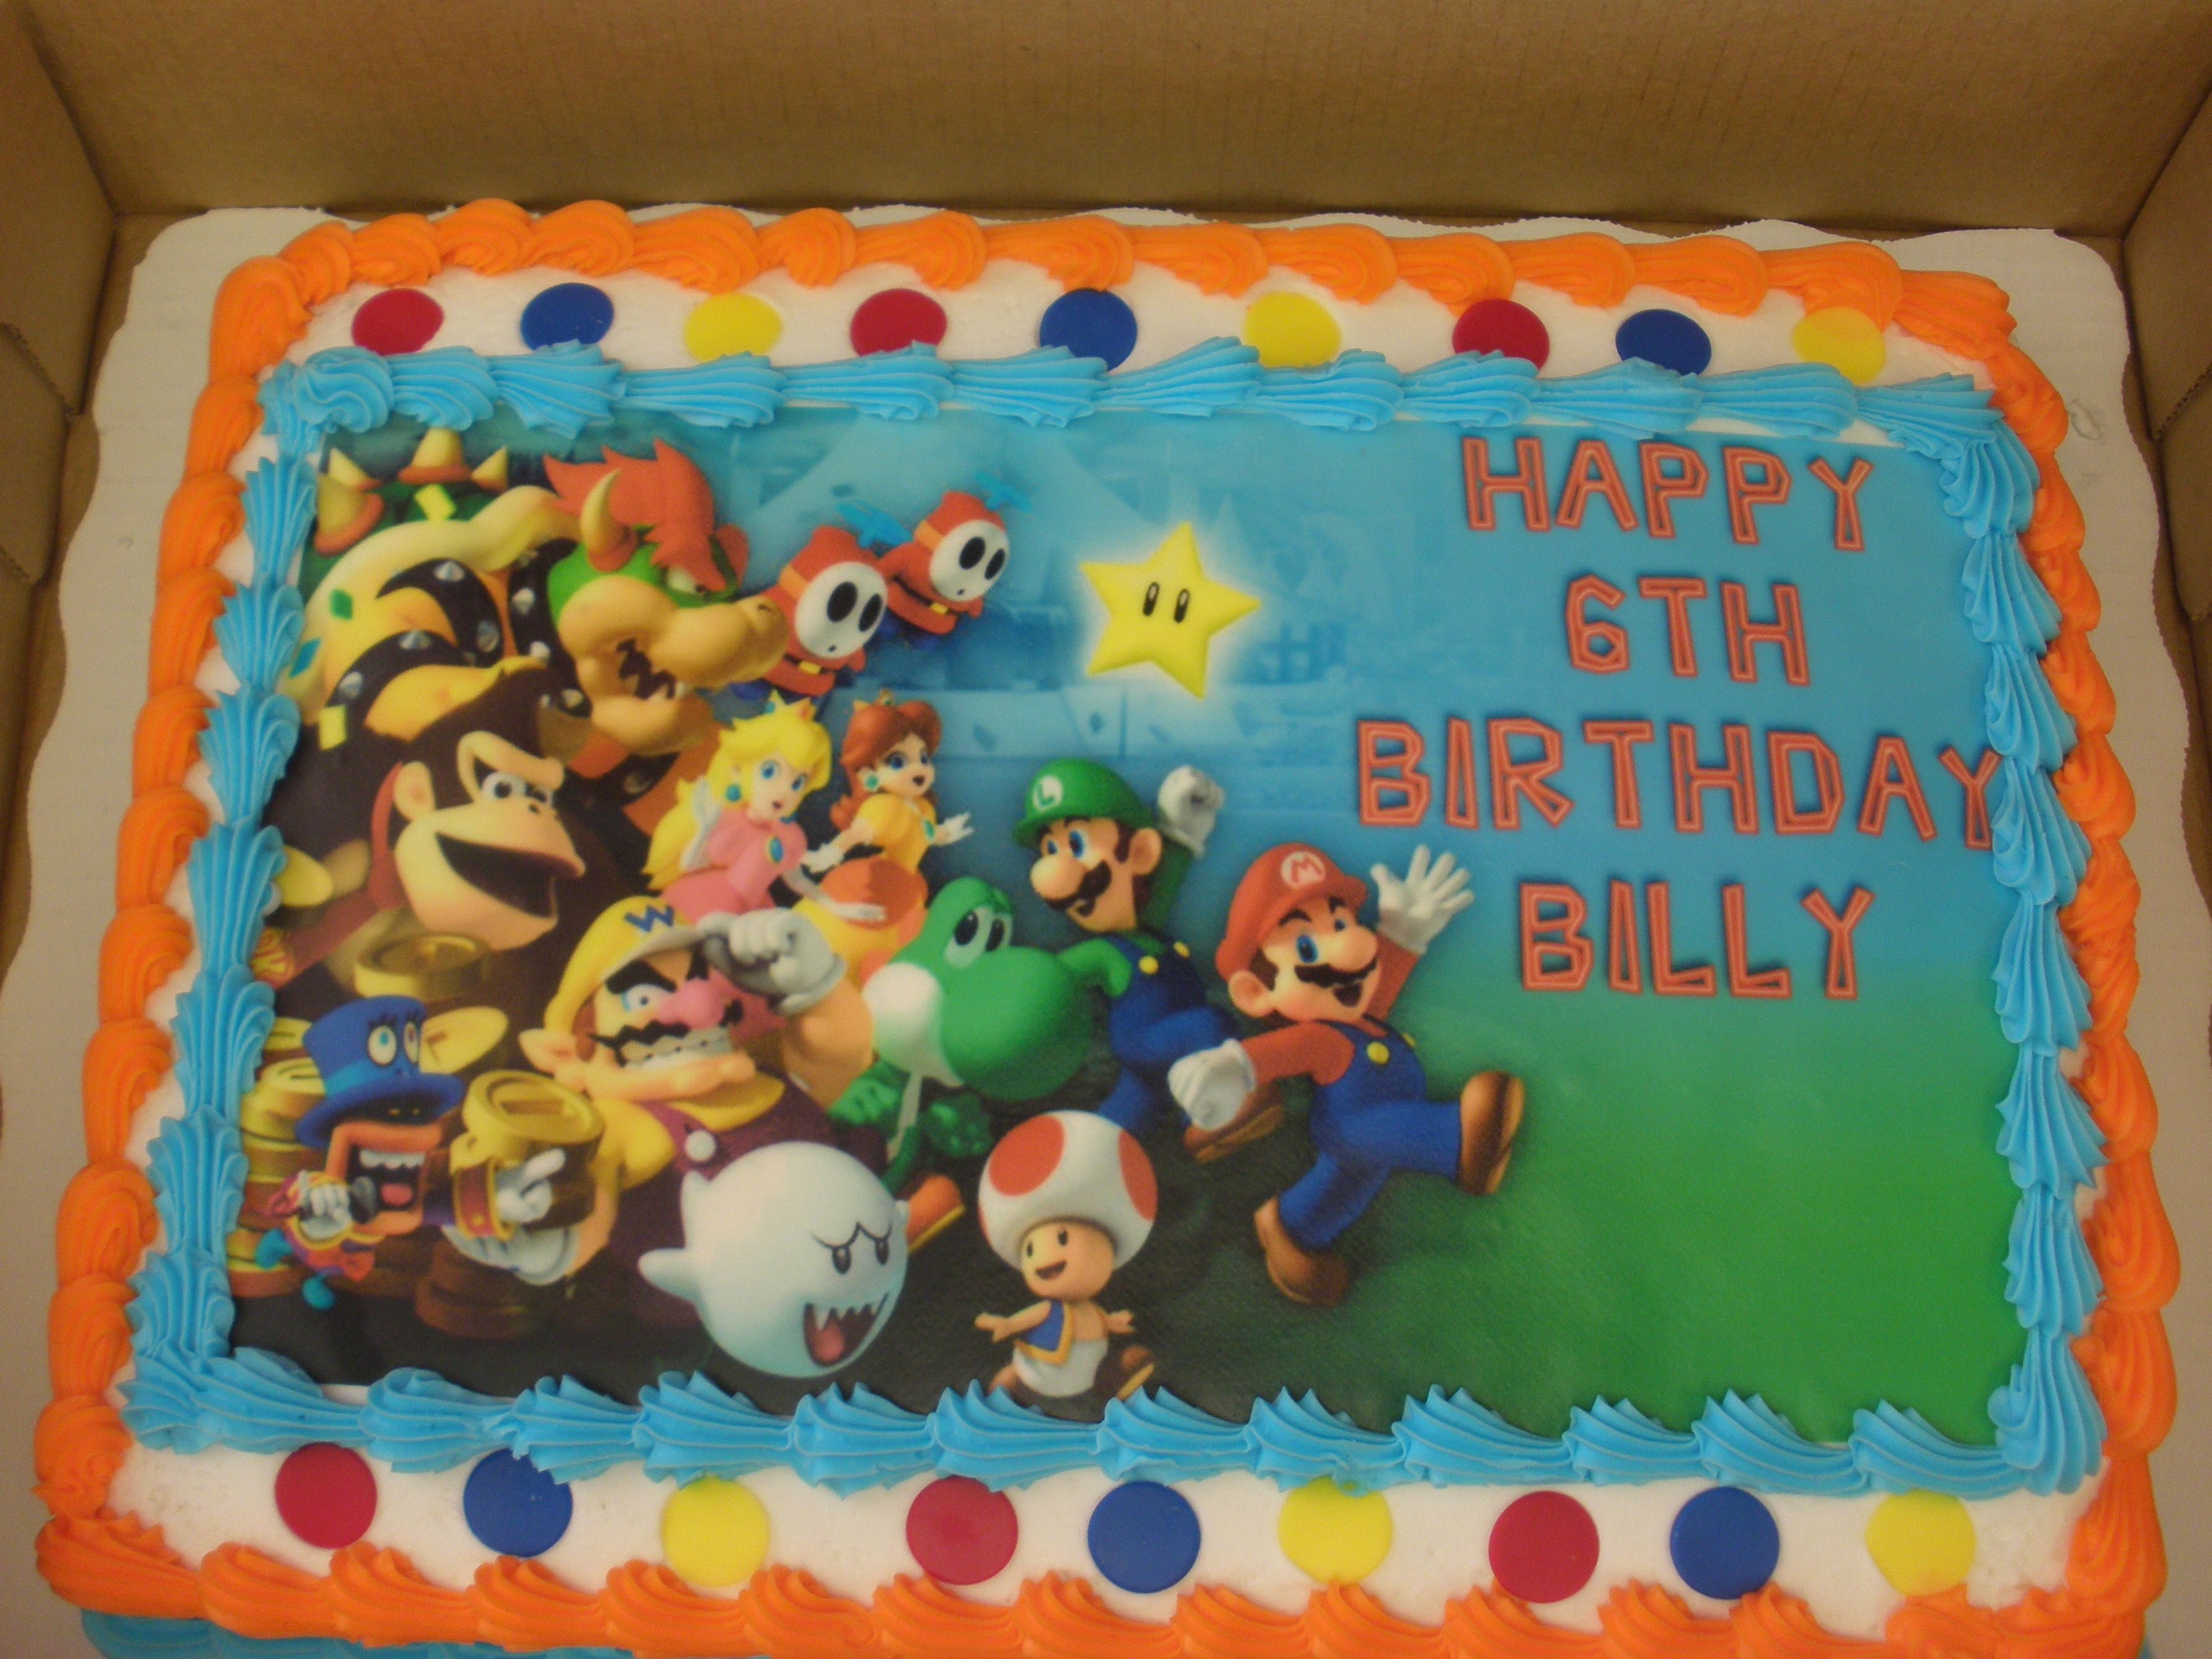 Surprising Mario Cake Bought Cake Topper Image From Ebay And Sams Club Birthday Cards Printable Nowaargucafe Filternl